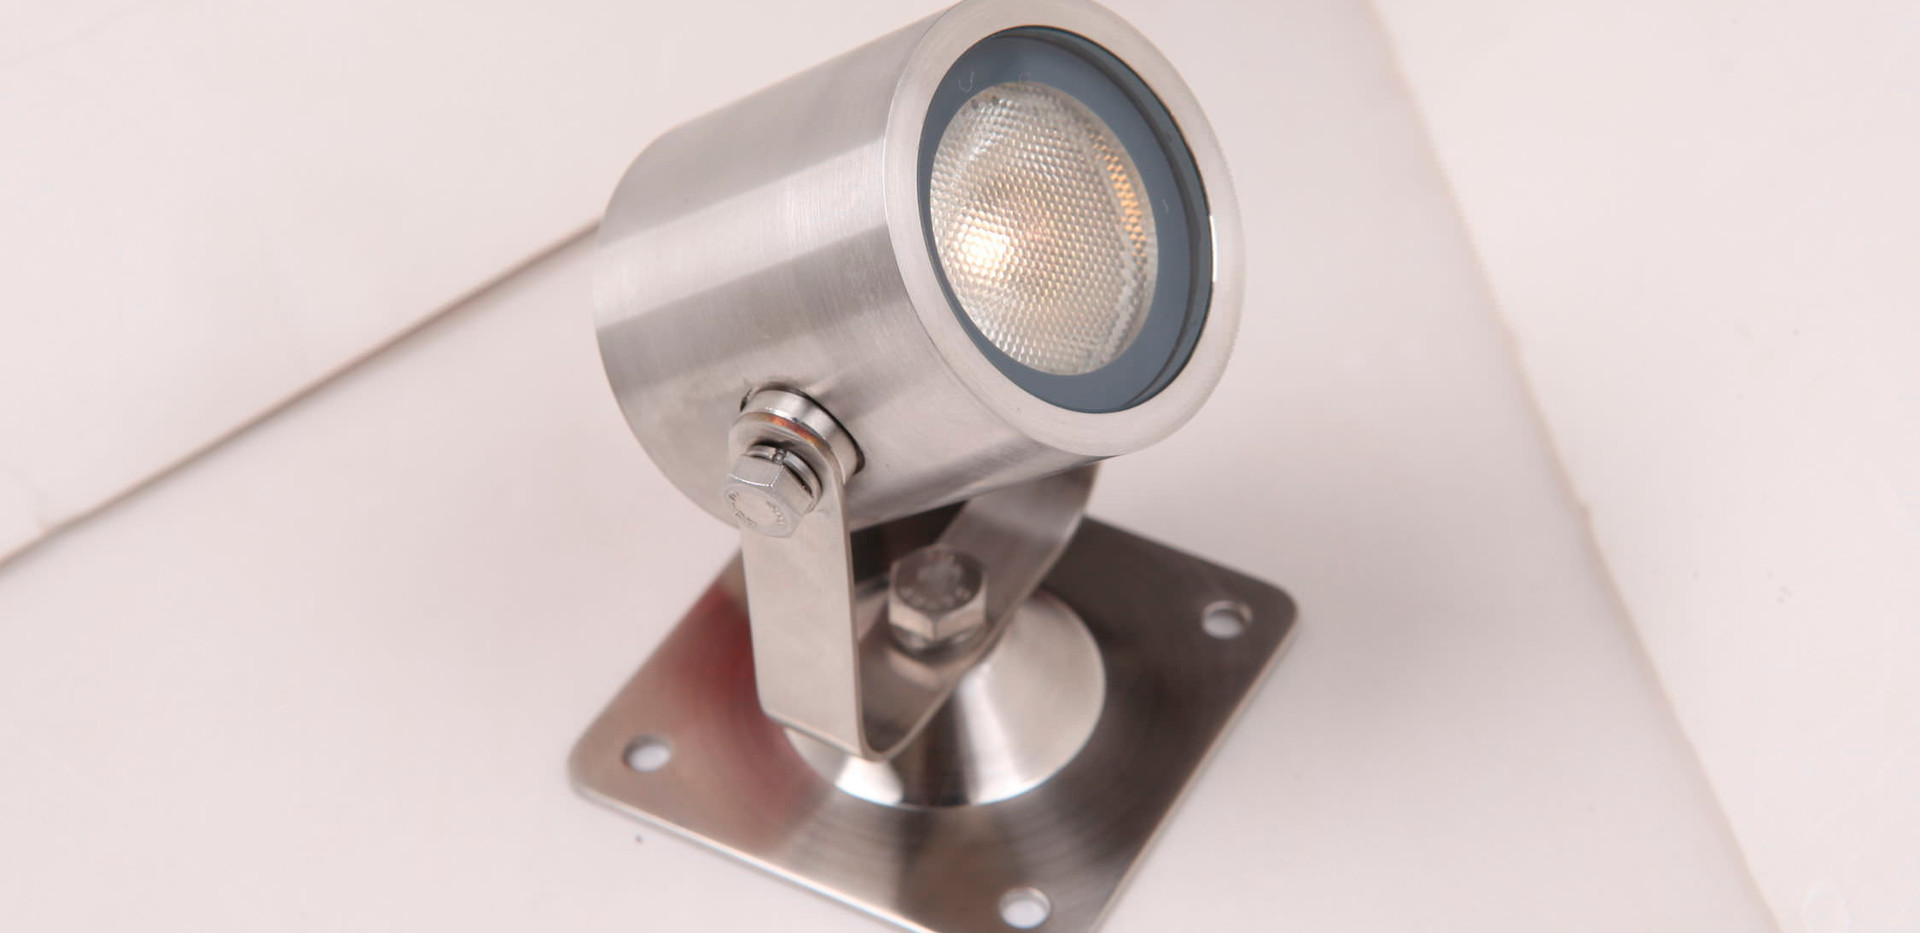 exterior-led-spotlights-61242-2178435.jp